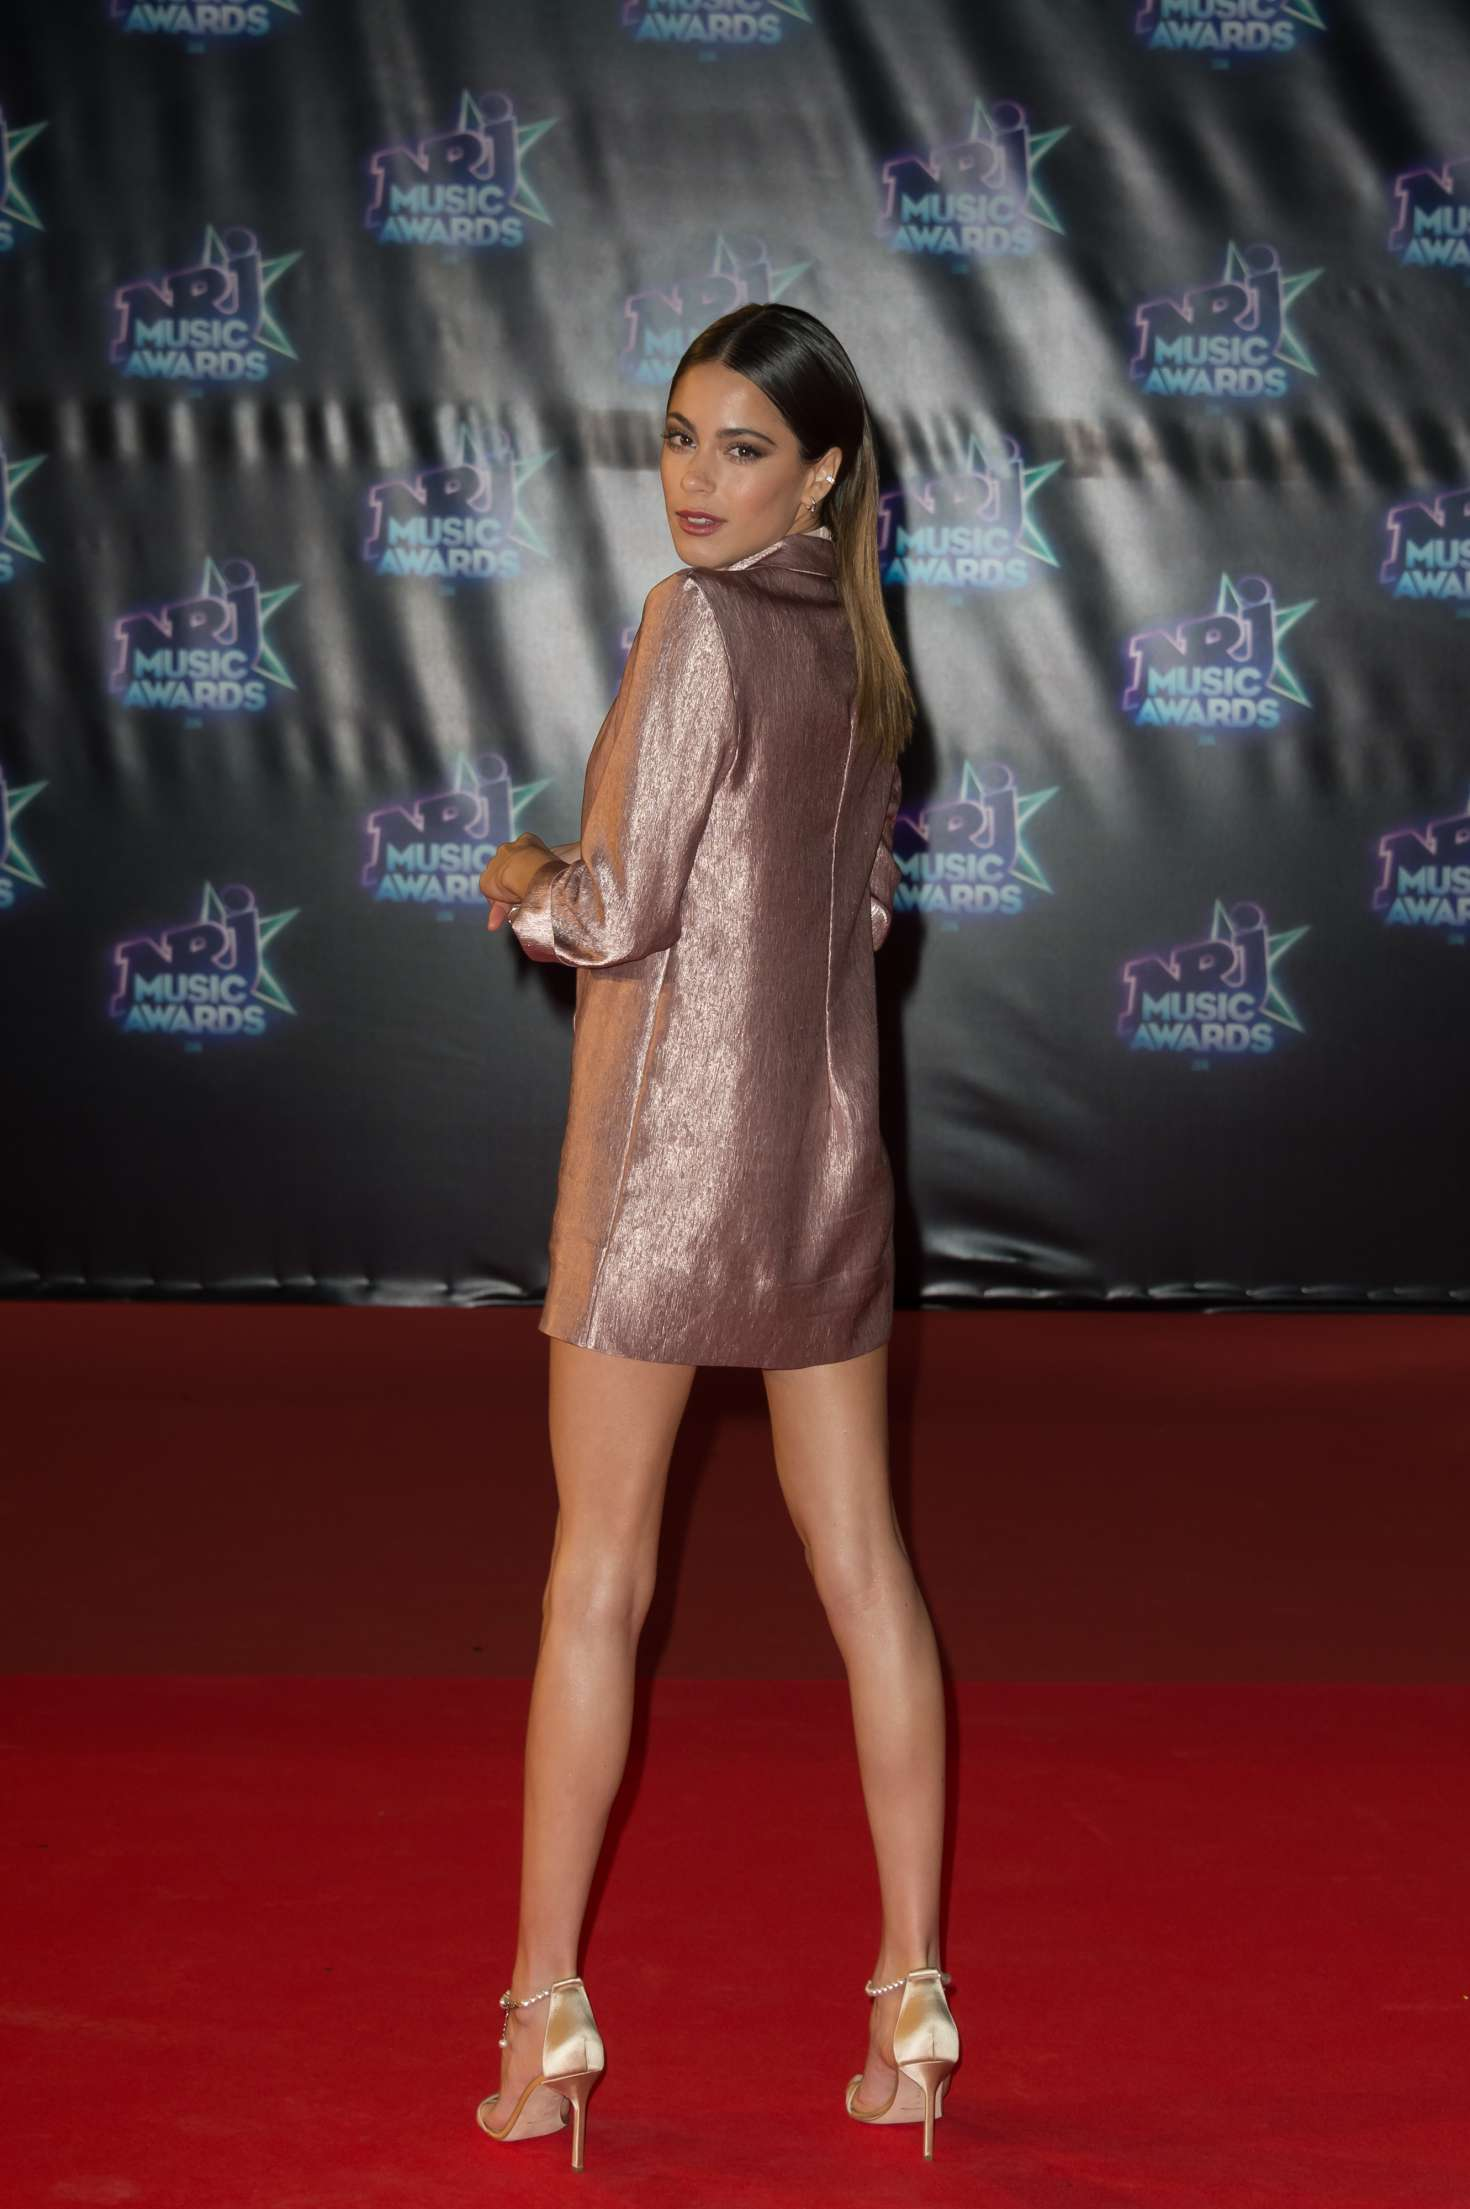 http://www.gotceleb.com/wp-content/uploads/photos/martina-stoessel/nrj-music-awards-2016-in-cannes/Martina-Stoessel:-NRJ-Music-Awards-2016--01.jpg